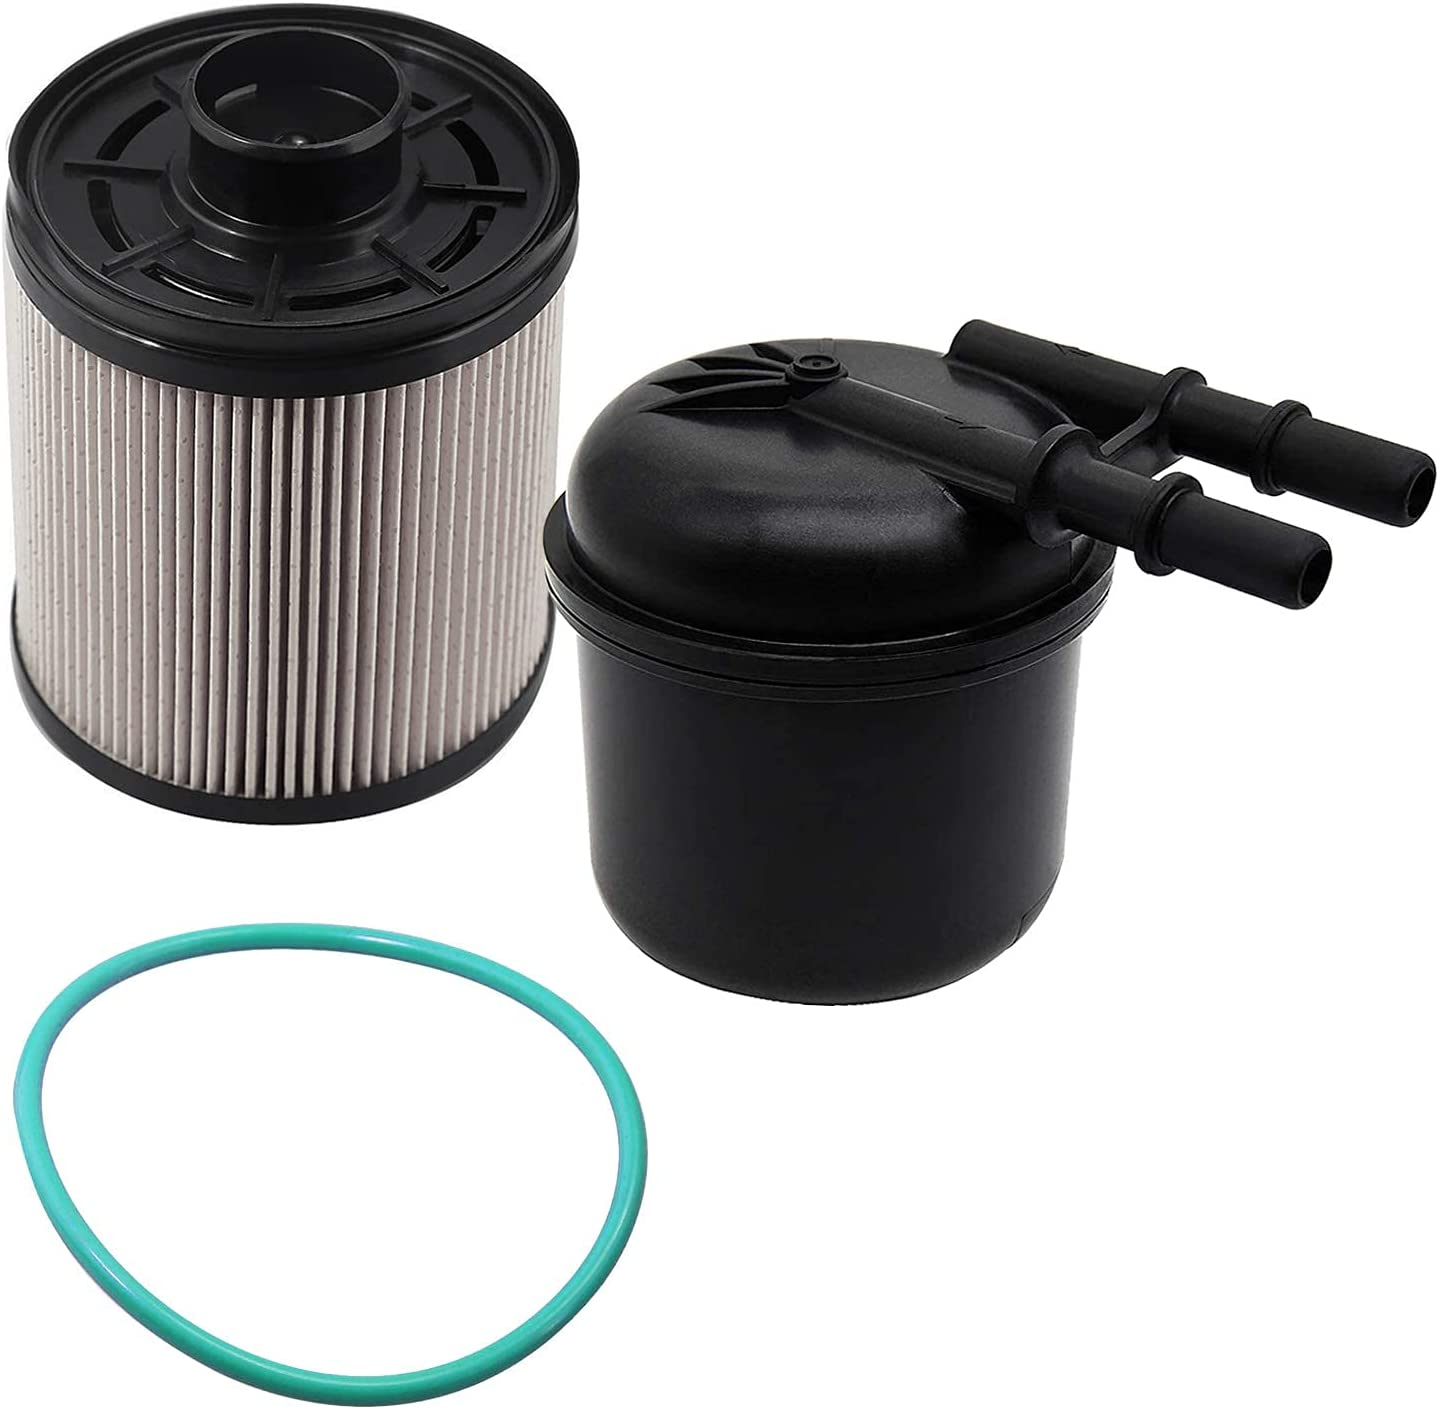 Max Gifts 58% OFF Handor FD-4615 6.7 Powerstroke Fuel Filter with Compatible 2011-